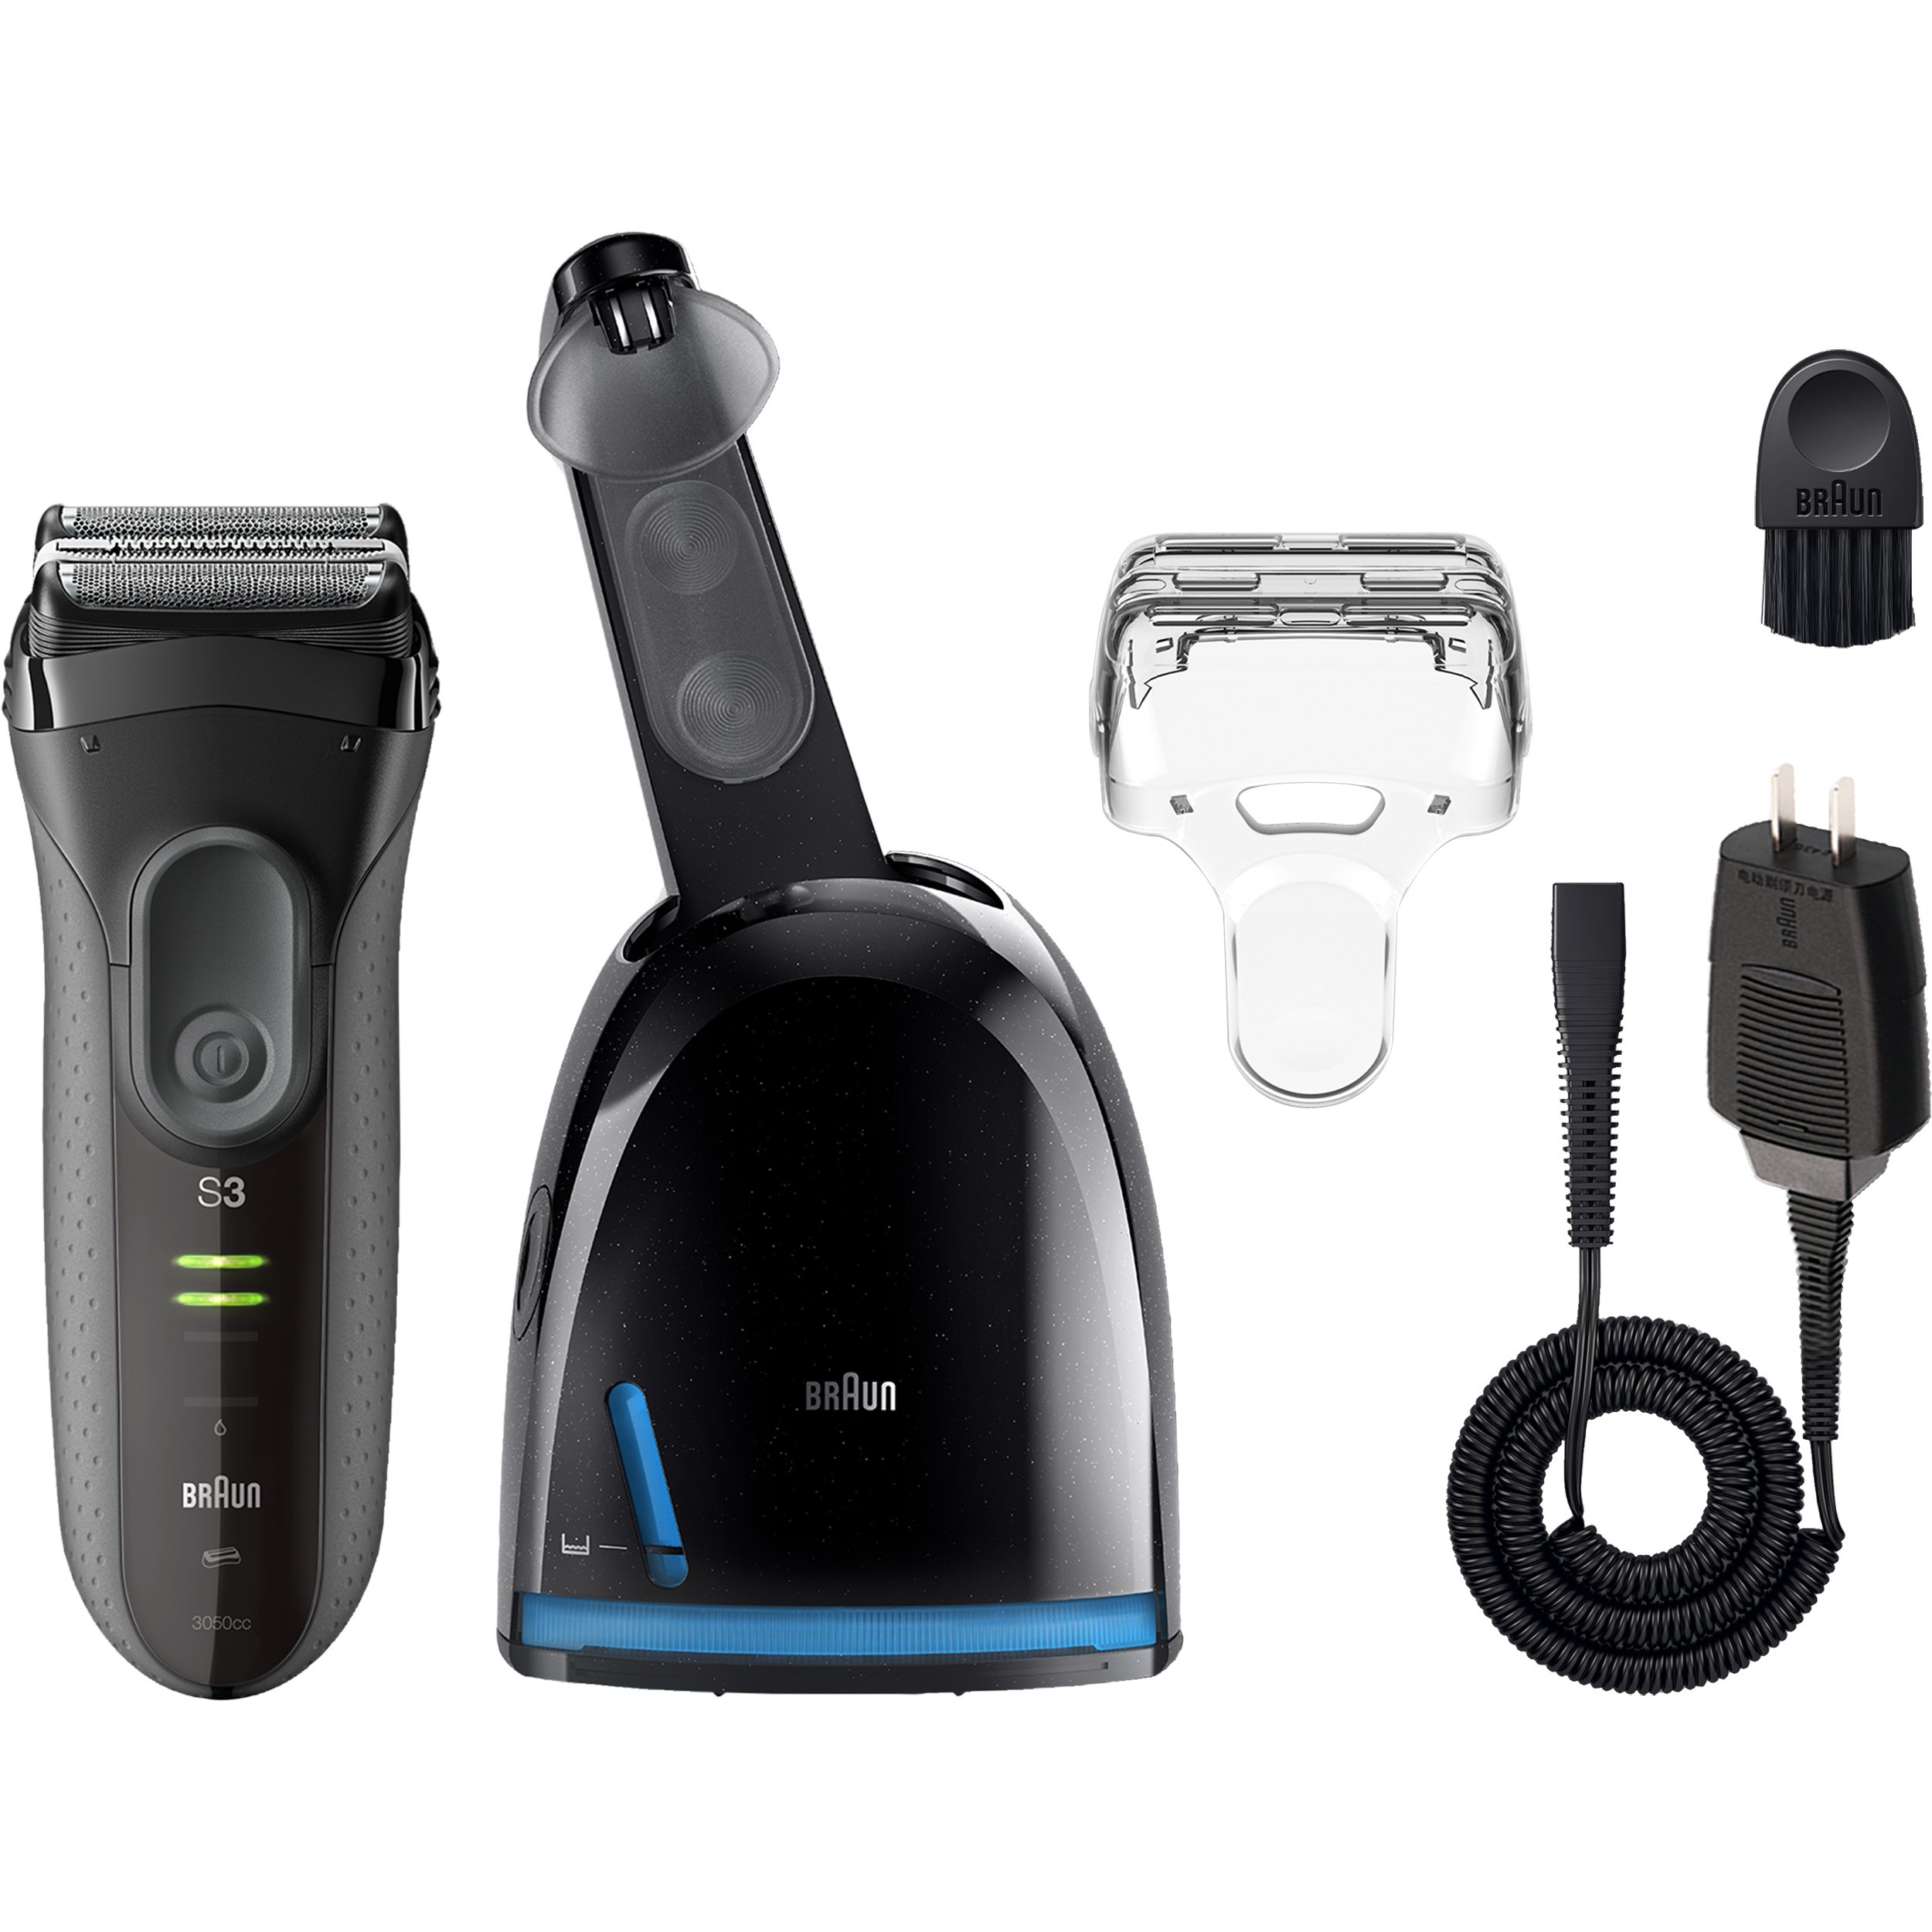 Braun Series 3 ProSkin 3050cc Electric Shaver for Men   Rechargeable Electric  Razor with Clean Charge System 04691c3e70